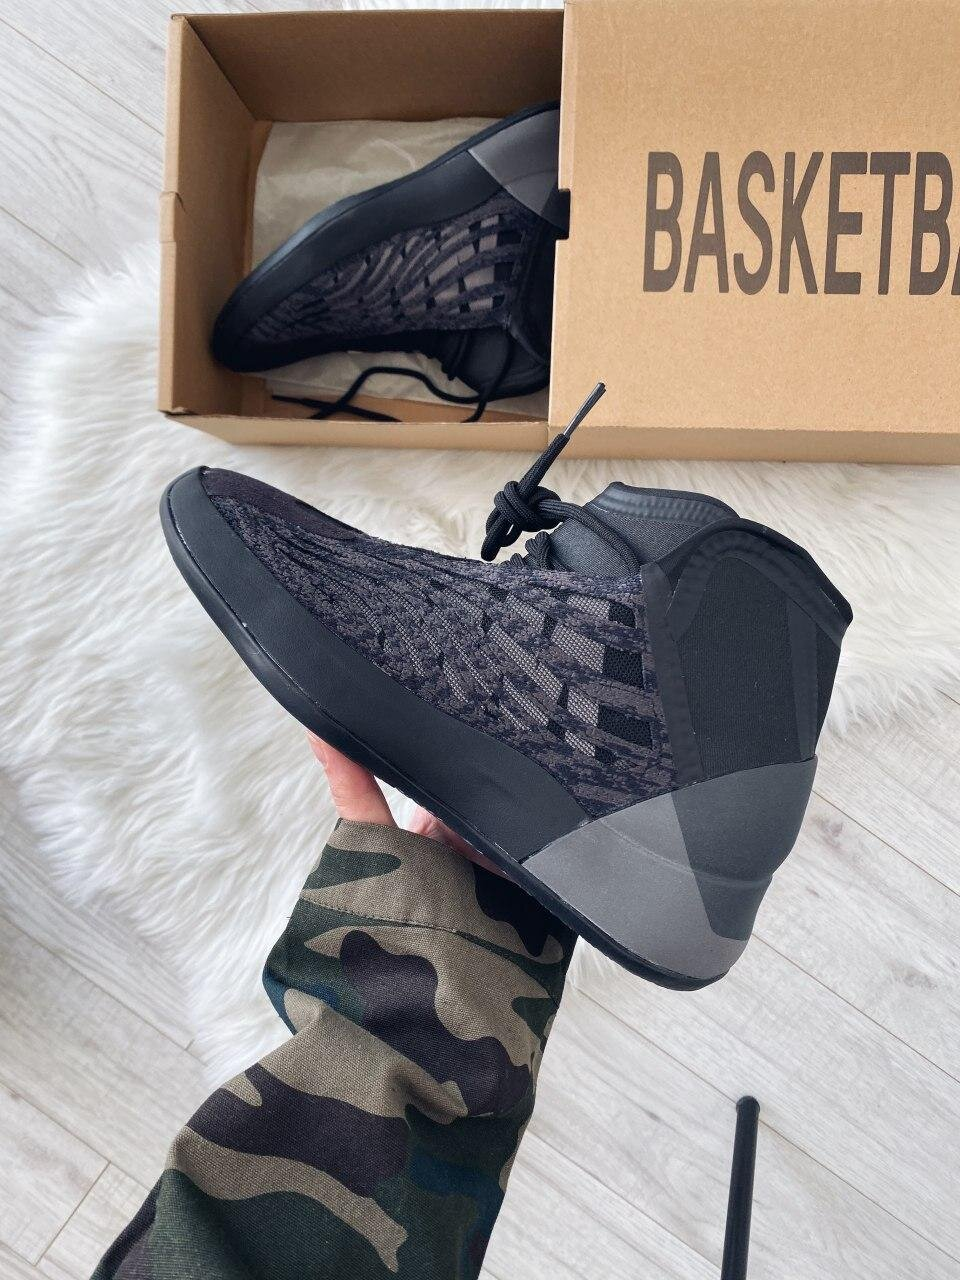 Adidas Yeezy Basketball Triple Black ( Реплика ААА+ ), 41